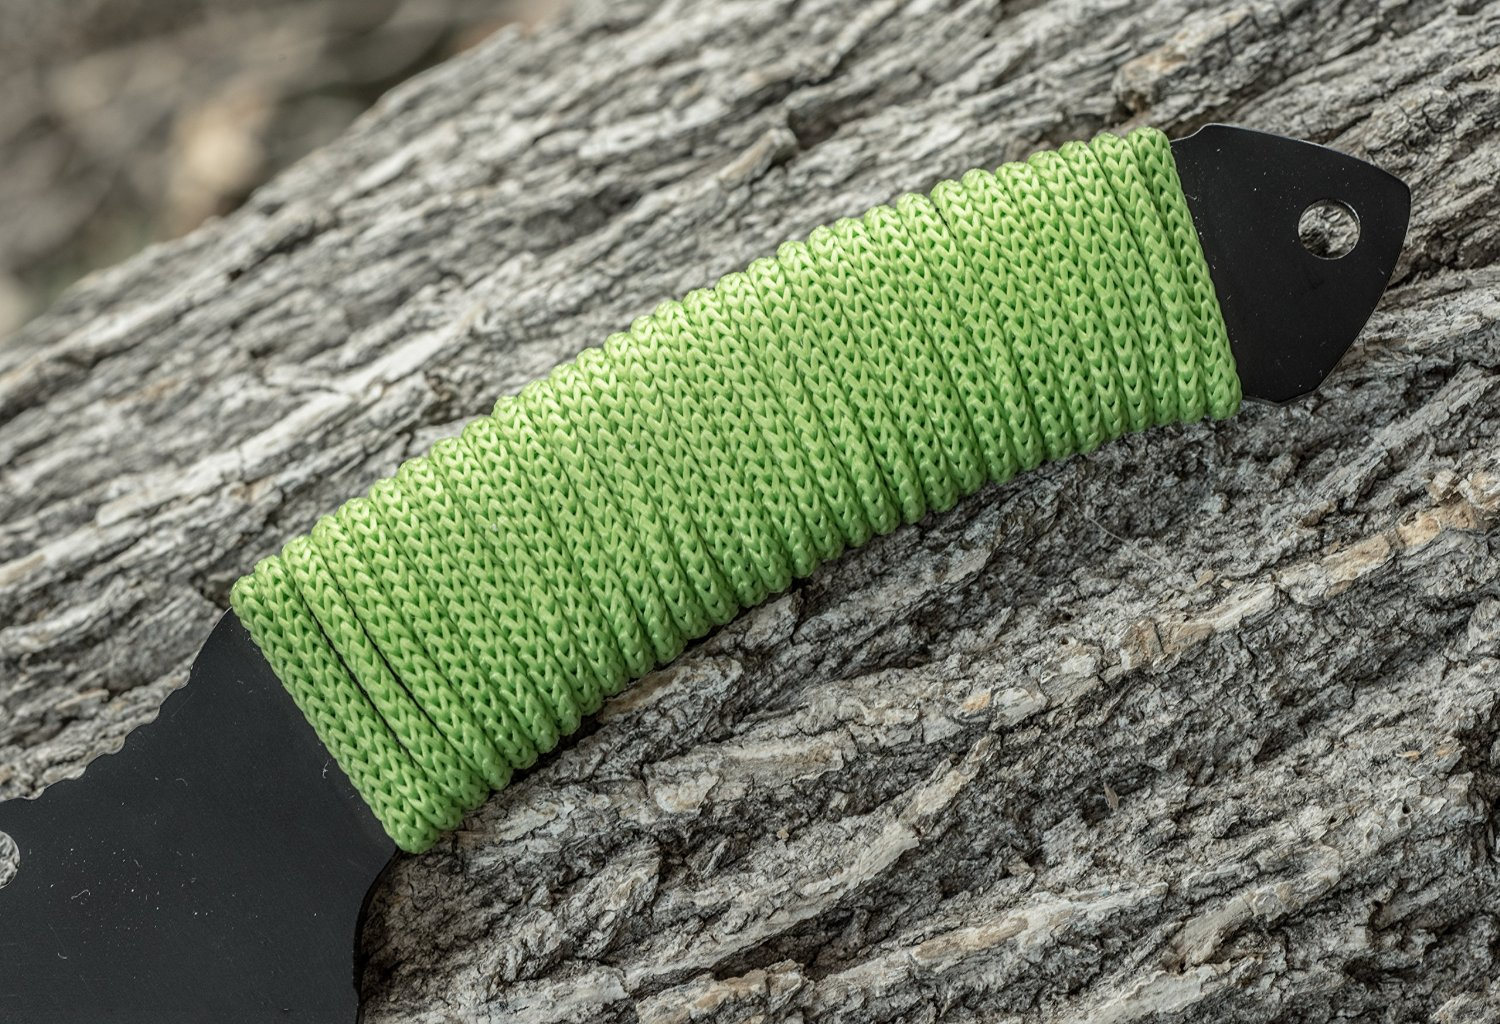 green hatchet axe with full tang and paracord handle